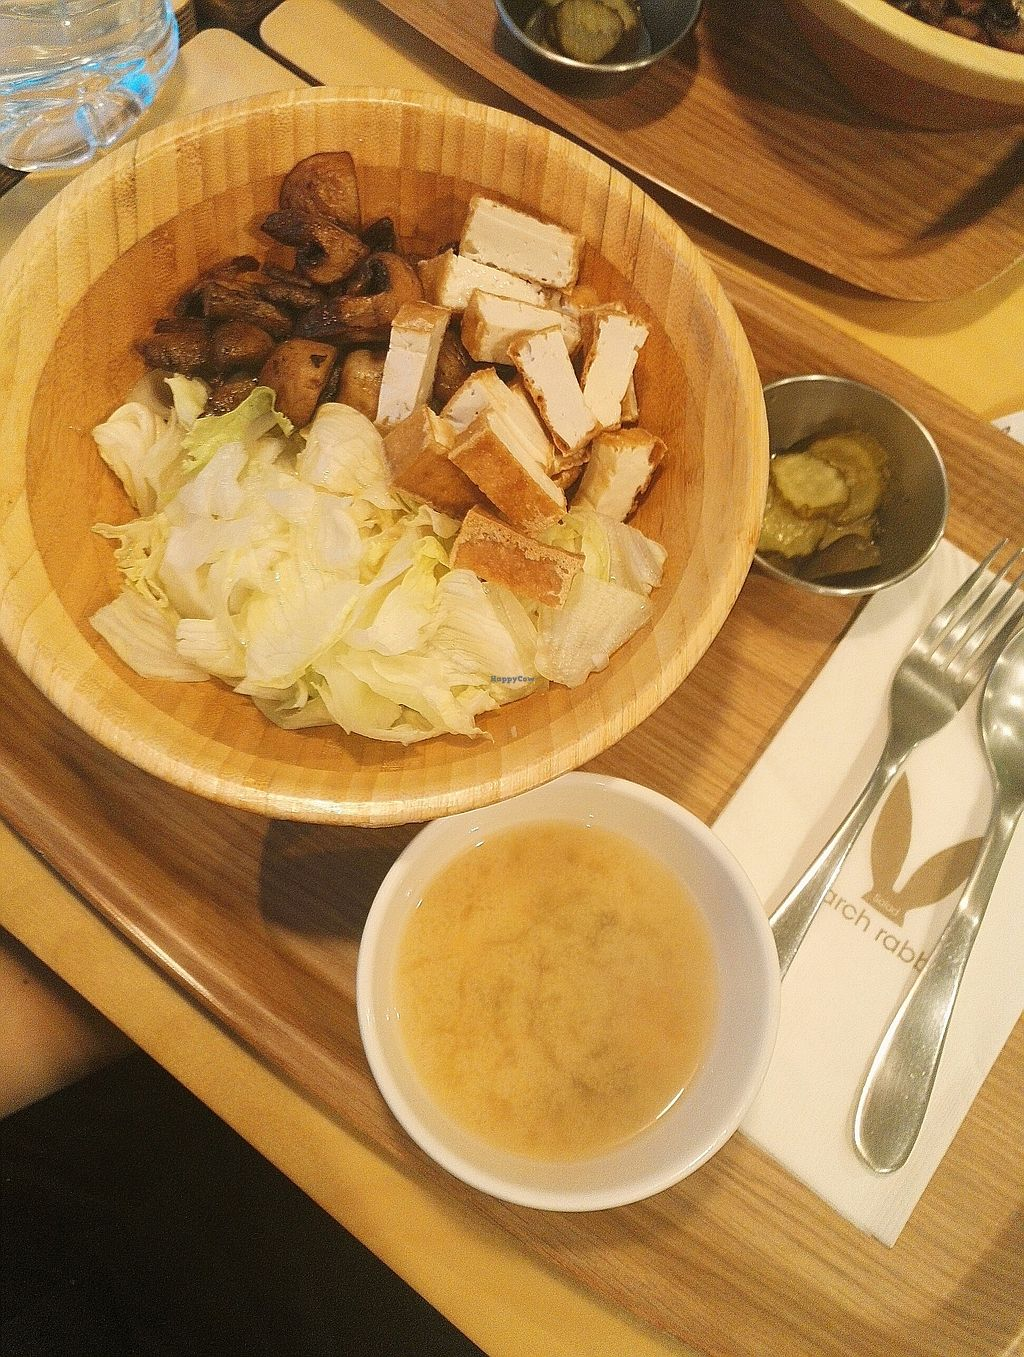 """Photo of March Rabbit - Gang-nam gu - 마치 래빗  by <a href=""""/members/profile/EOH"""">EOH</a> <br/>tofu rice bowl - didn't drink the soup as couldn't be sure was vegan  <br/> July 31, 2017  - <a href='/contact/abuse/image/43717/287279'>Report</a>"""